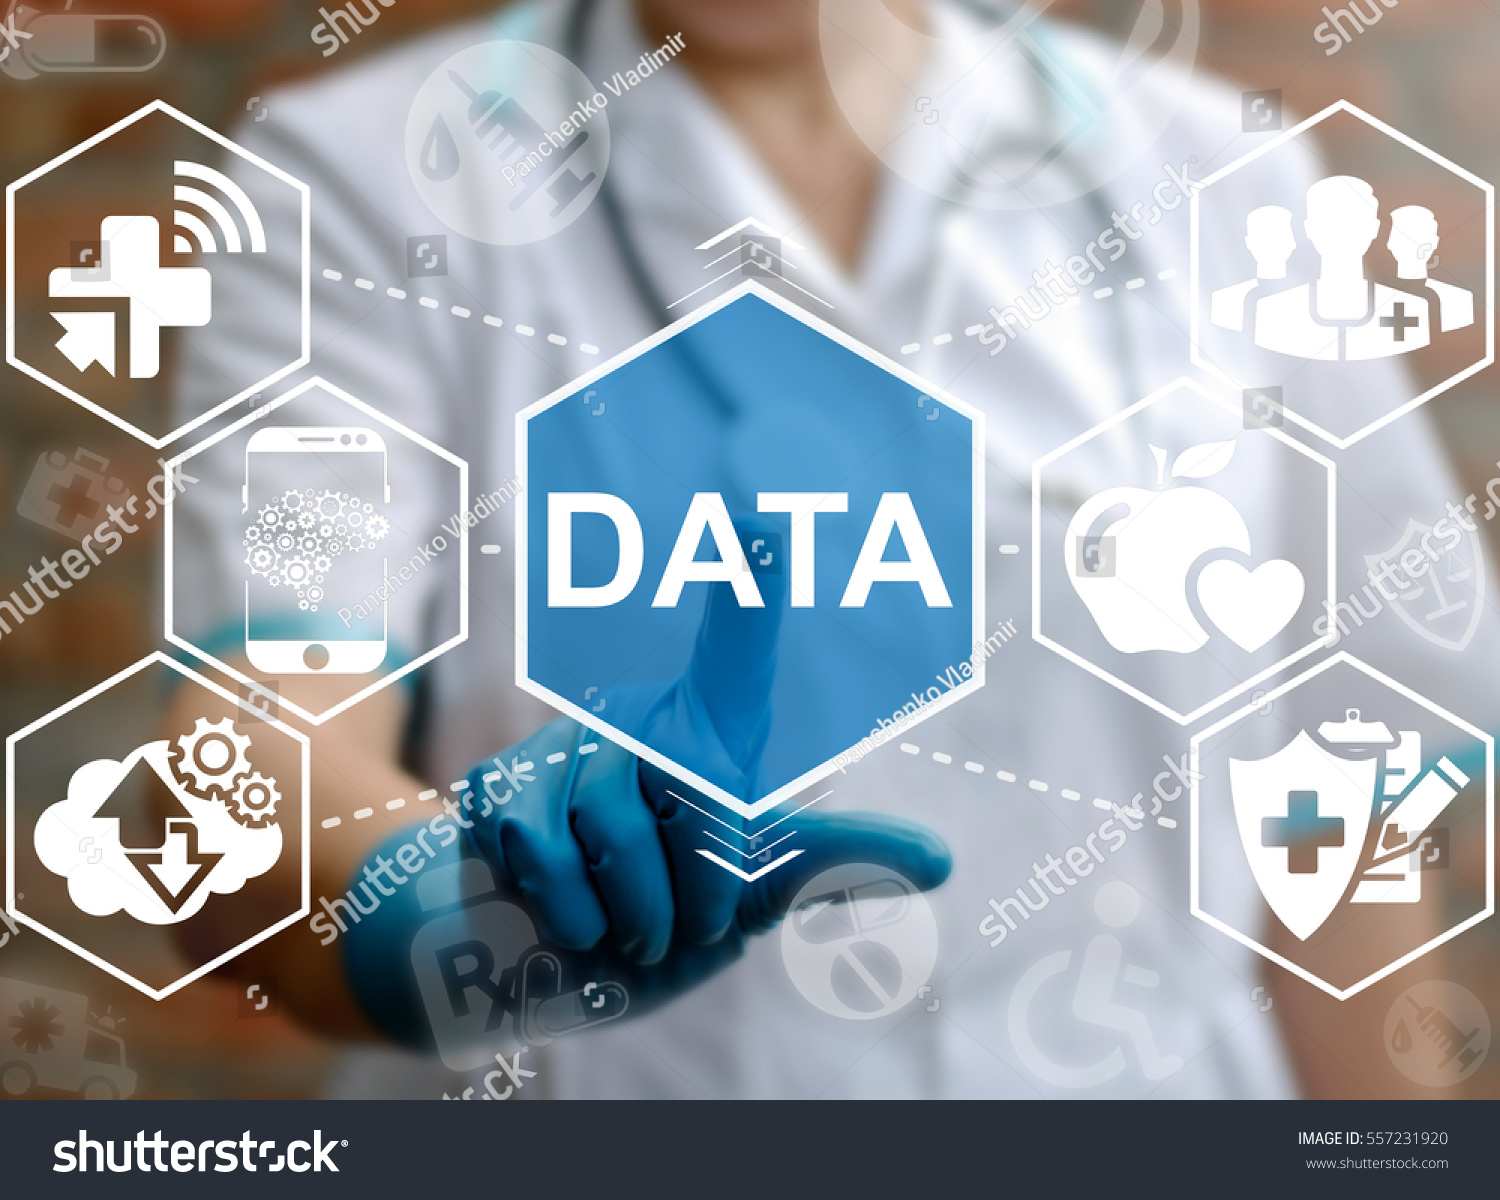 mobile computing in health care Change comes slowly to the health care industry but progress is starting to be achieved as mobile applications proliferate across the industry.